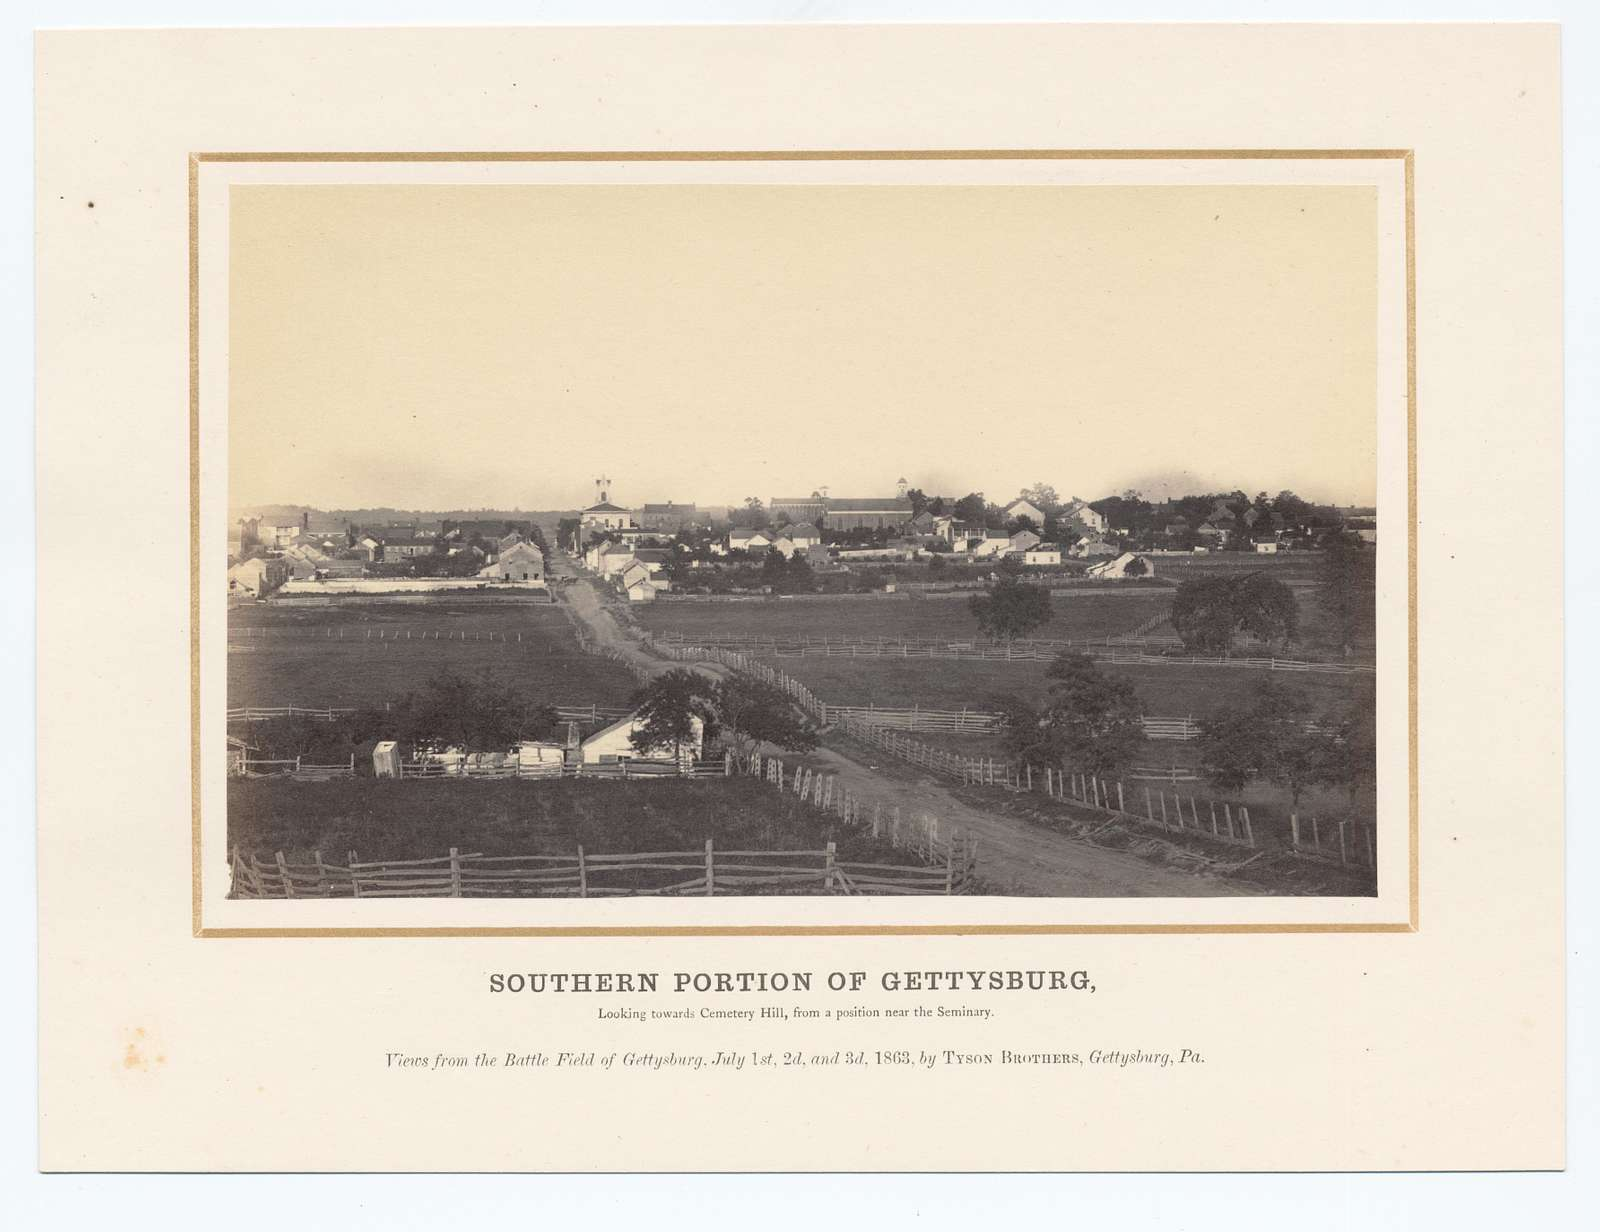 Southern portion of Gettysburg, looking toward Cemetery Hill, from a position near the Seminary.